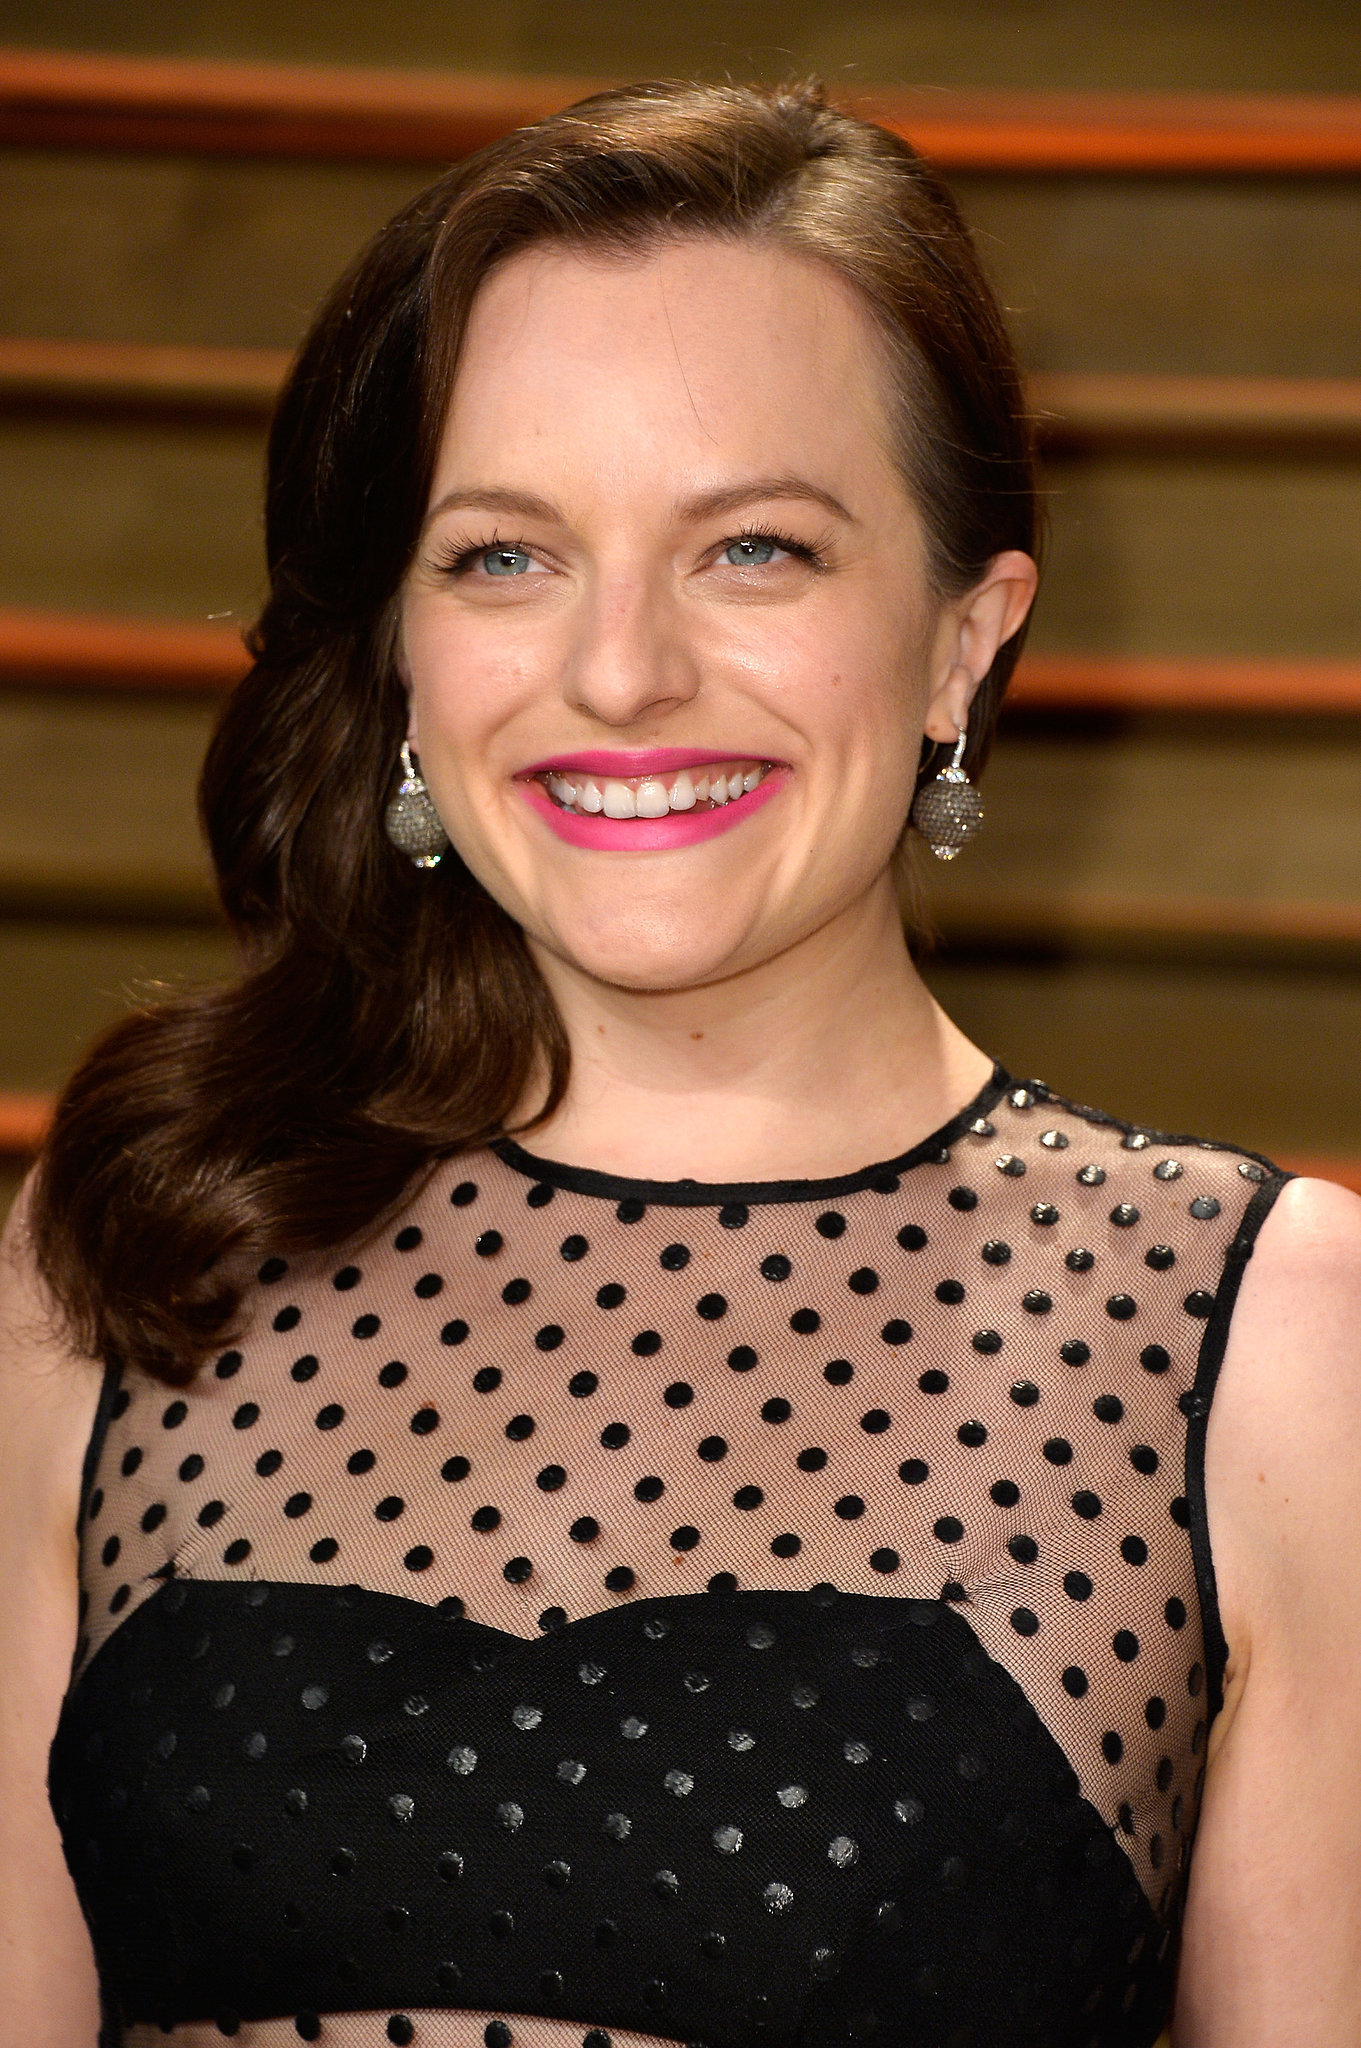 "In 2014, Elisabeth Moss told New York Magazine about her divorce from SNL alum Fred Armisen: ""Looking back, I feel like I was really young, and at the time I didn't think that I was that young. It was extremely traumatic and awful and horrible. At the same time, it turned out for the best. I'm glad that I'm not there. I'm glad that it didn't happen when I was 50. I'm glad I didn't have kids. And I got that out of the way. Hopefully. Like, that's probably not going to happen again."""